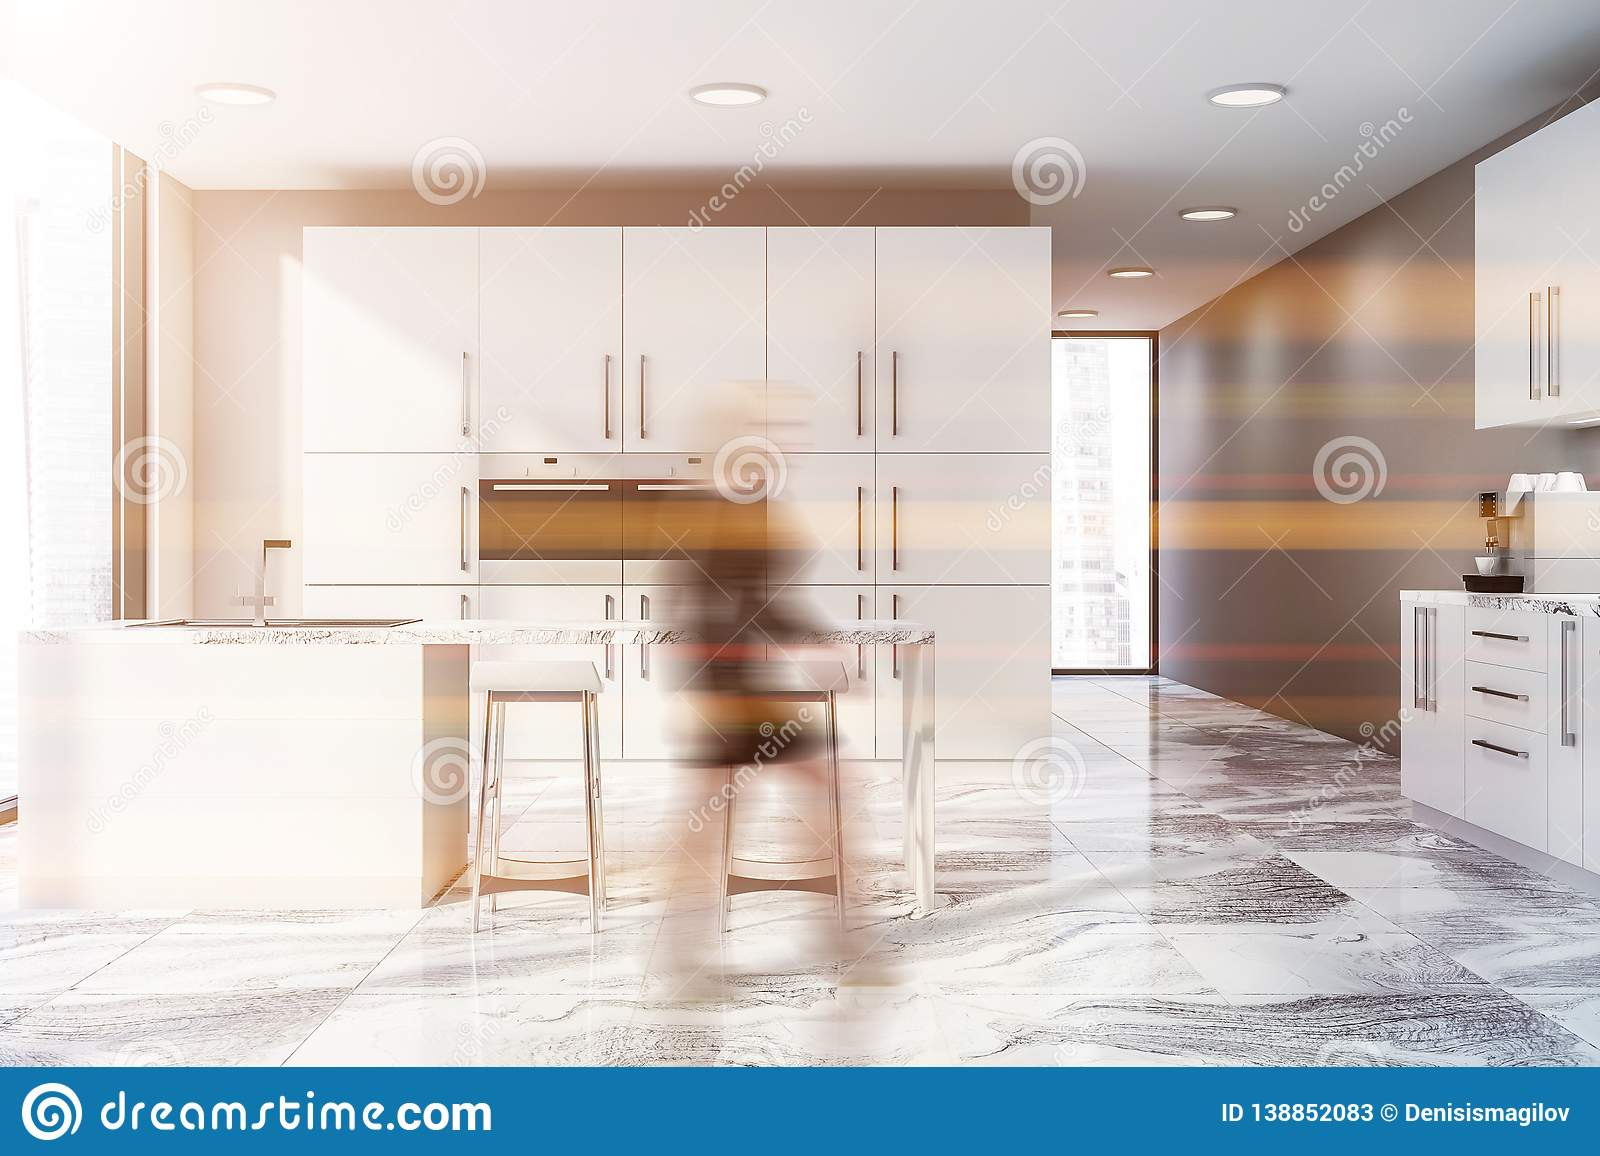 Beige Kitchen With Countertops And Bar Woman Stock Image Image Of